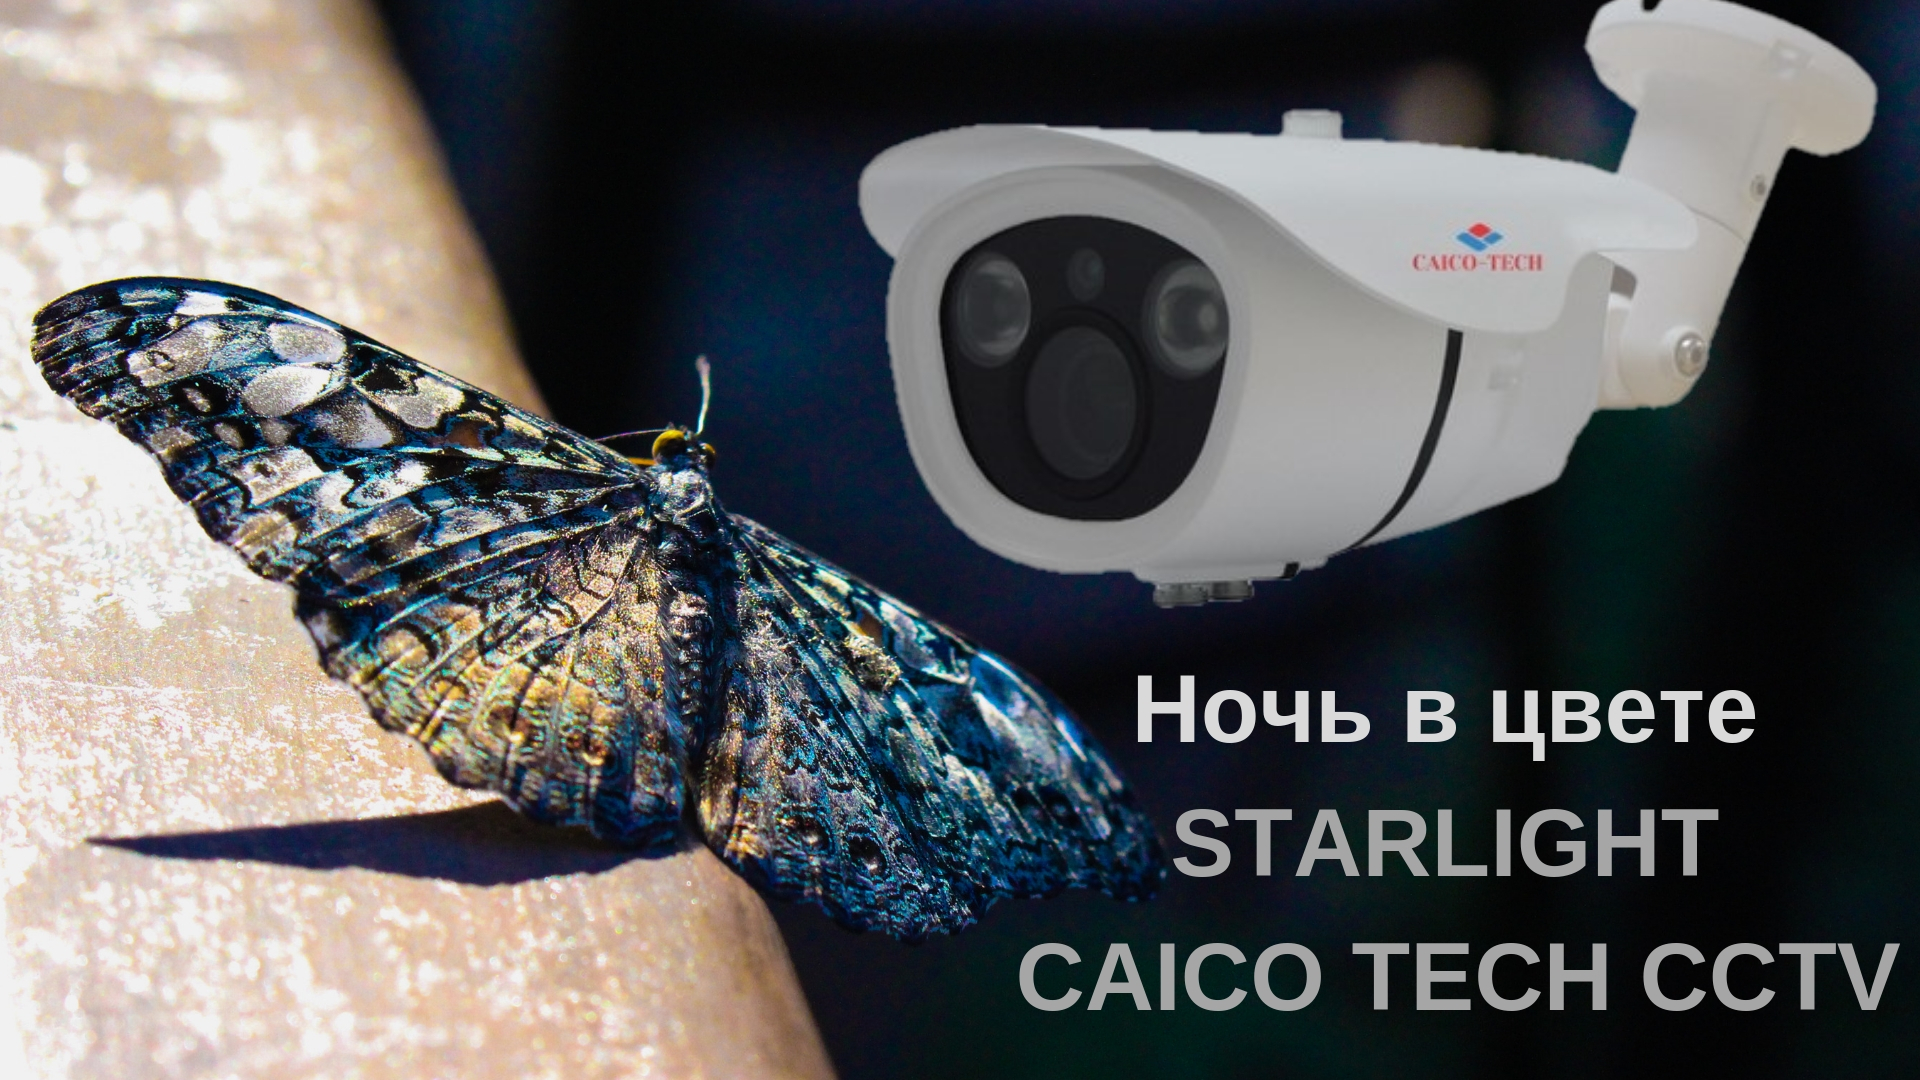 STARLIGHT  CAICO TECH CCTV видеокамеры